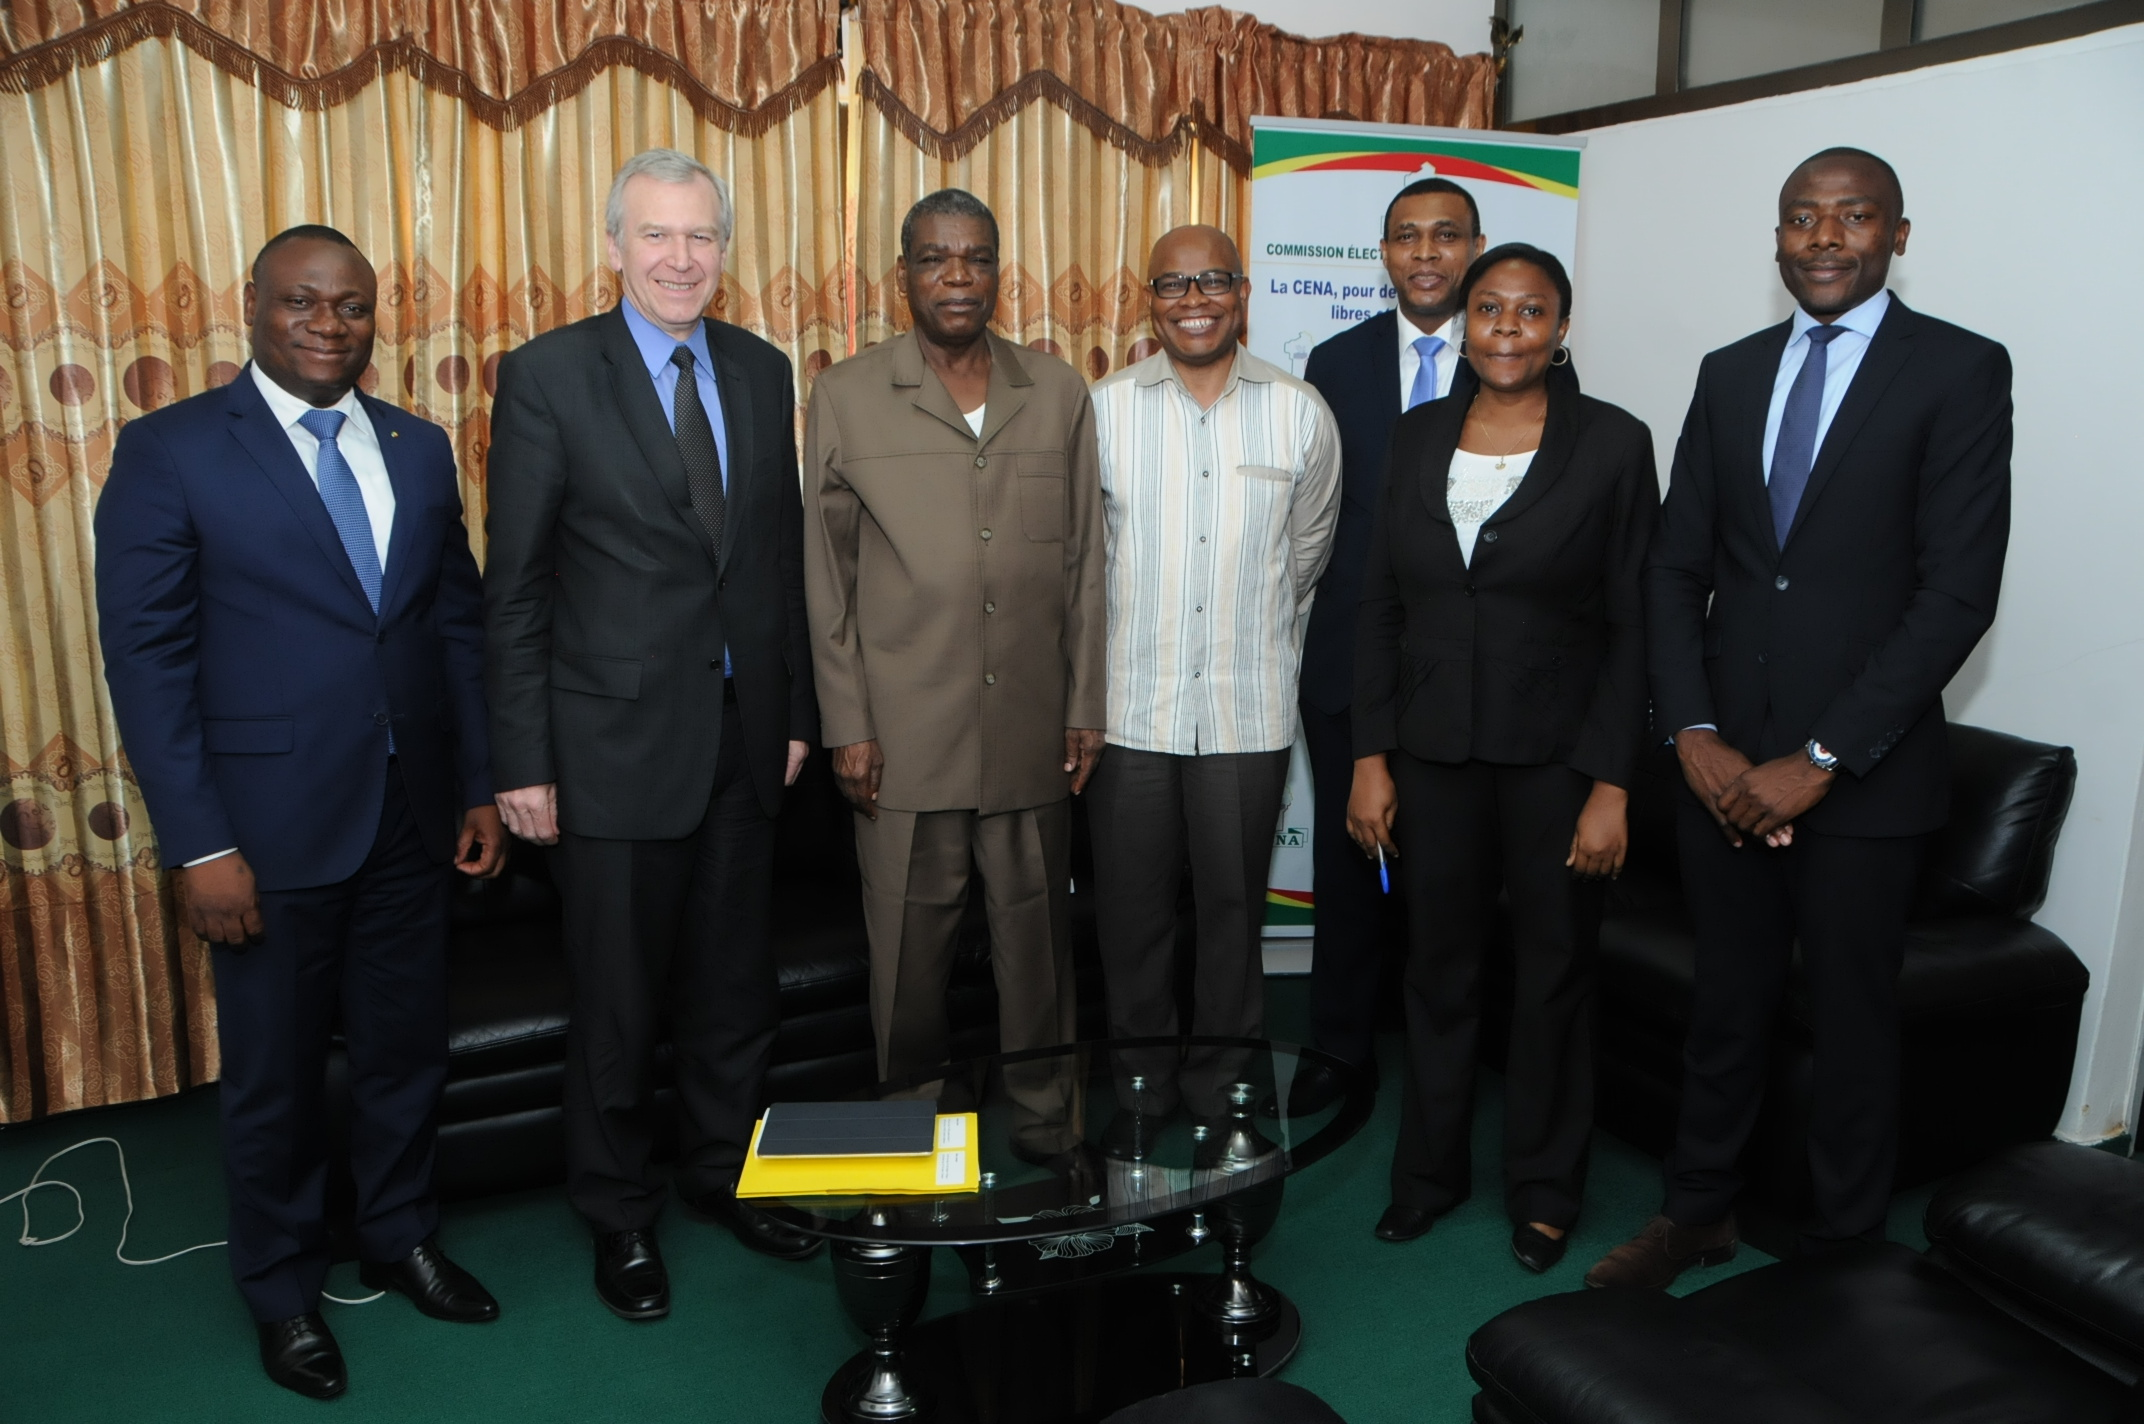 Left to right: Christophe Dangnihin (Europe Director, Benin Ministry of Foreign Affairs), Yves Leterme (Secretary-General, International IDEA), Emmanuel Tiando (Chairperson, CENA Benin), Adebayo Olukoshi (AwA Director, International IDEA), Mrs Toure (Benin, Ministry of Foreign Affairs) Maurice Mboula Jean-Claude Didier Enguelegue (Senior Programme Officer, International IDEA) & Tayuh Ngenge (Programme Officer, International IDEA).